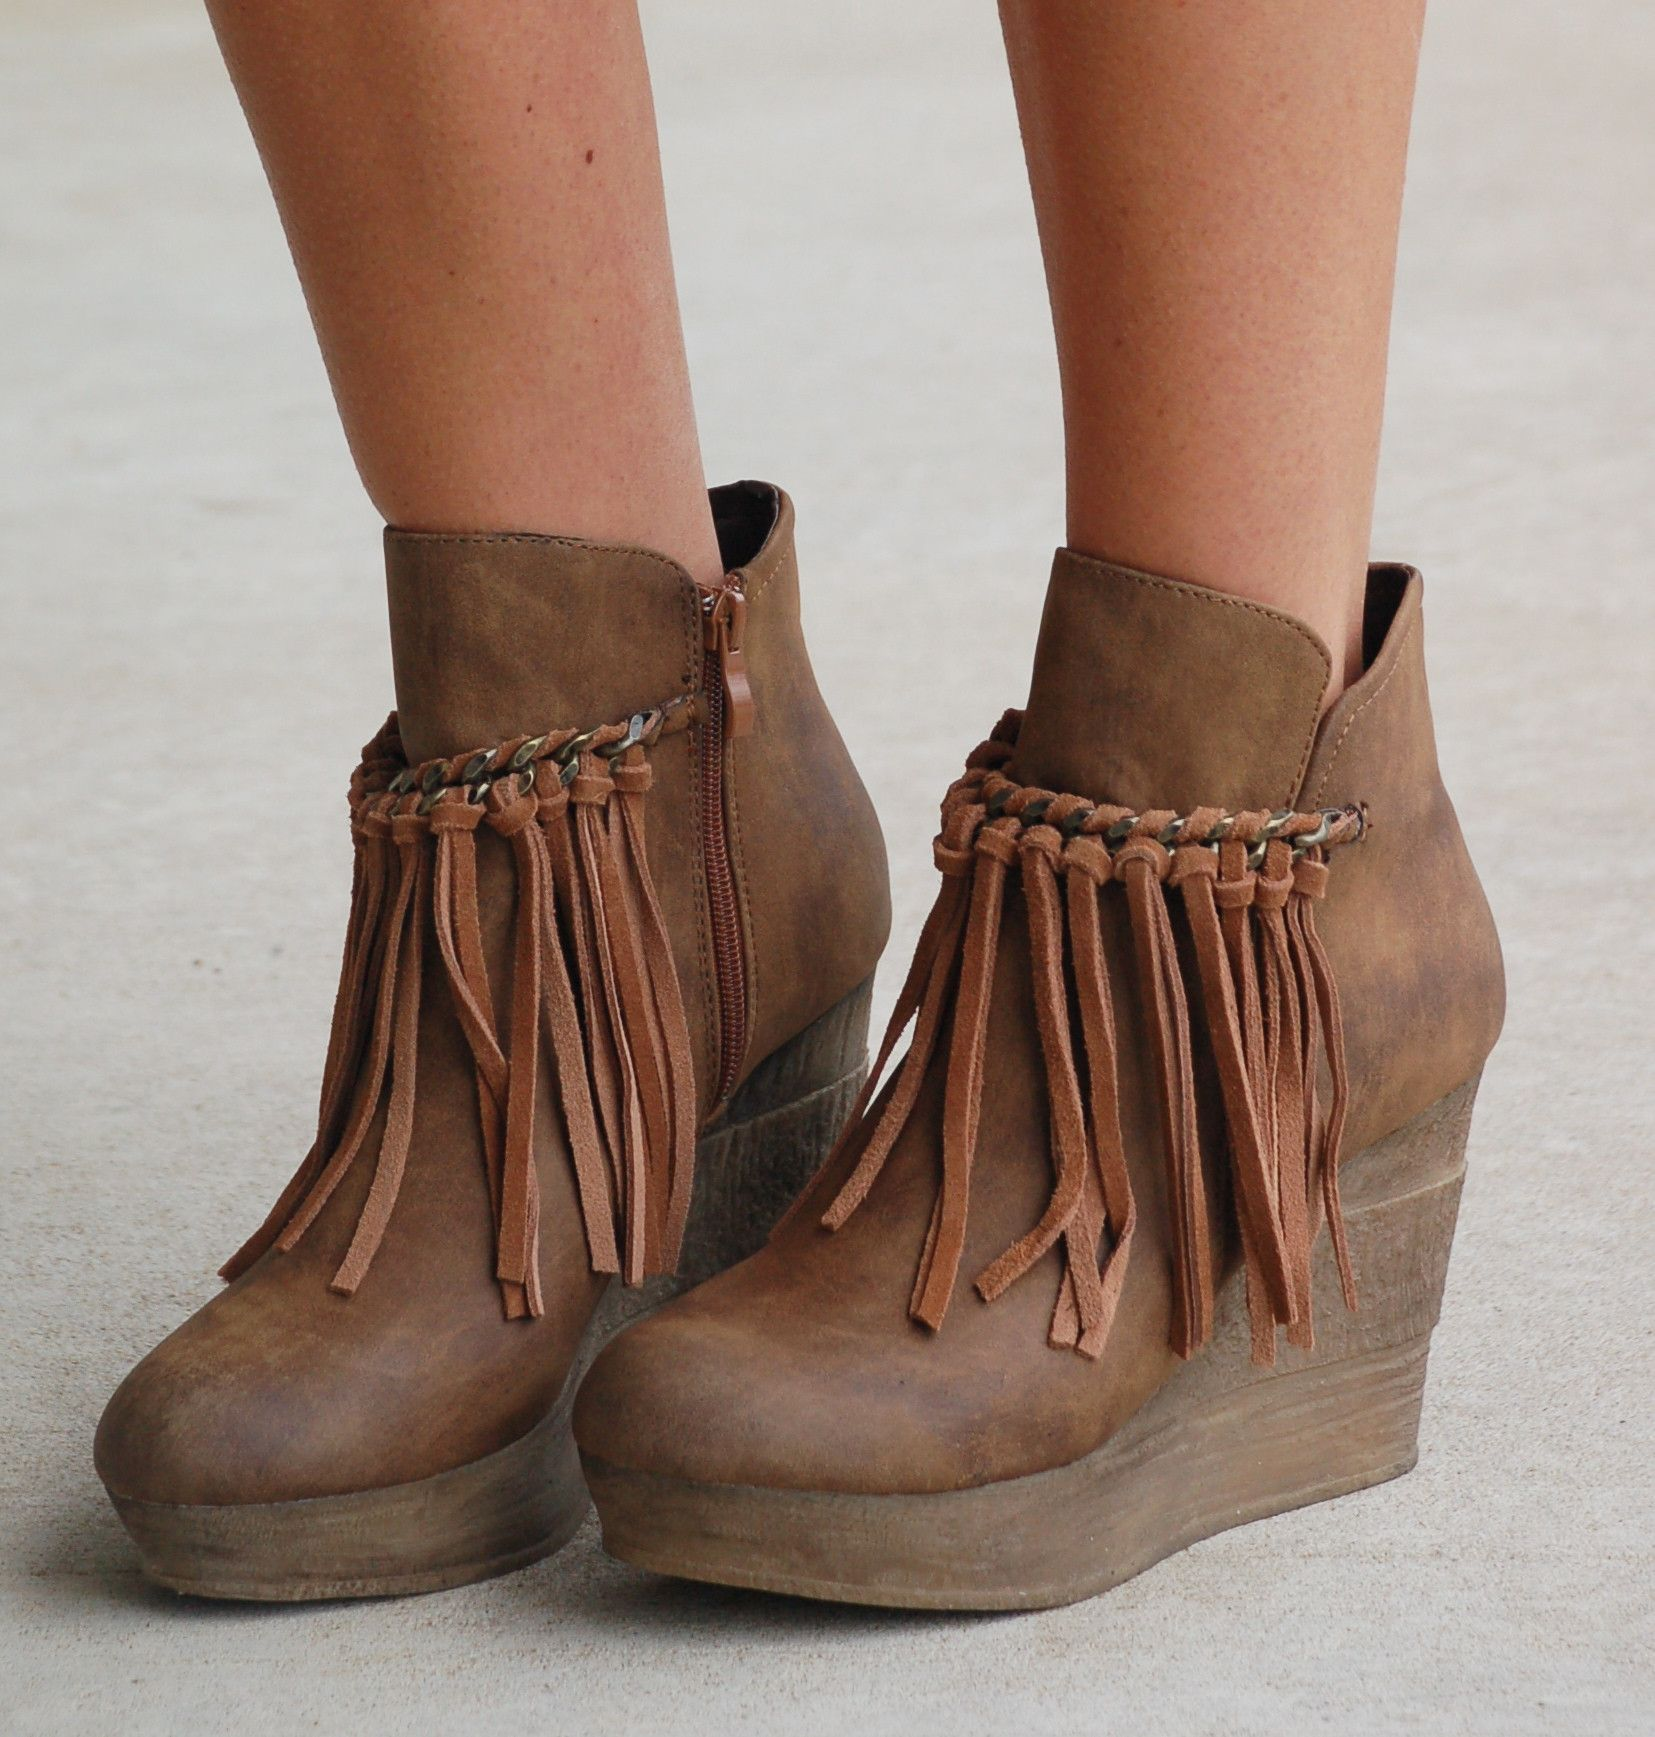 Fringe Zepp Wedge Bootie - Taupe | Clothes | Pinterest | Grigio ...